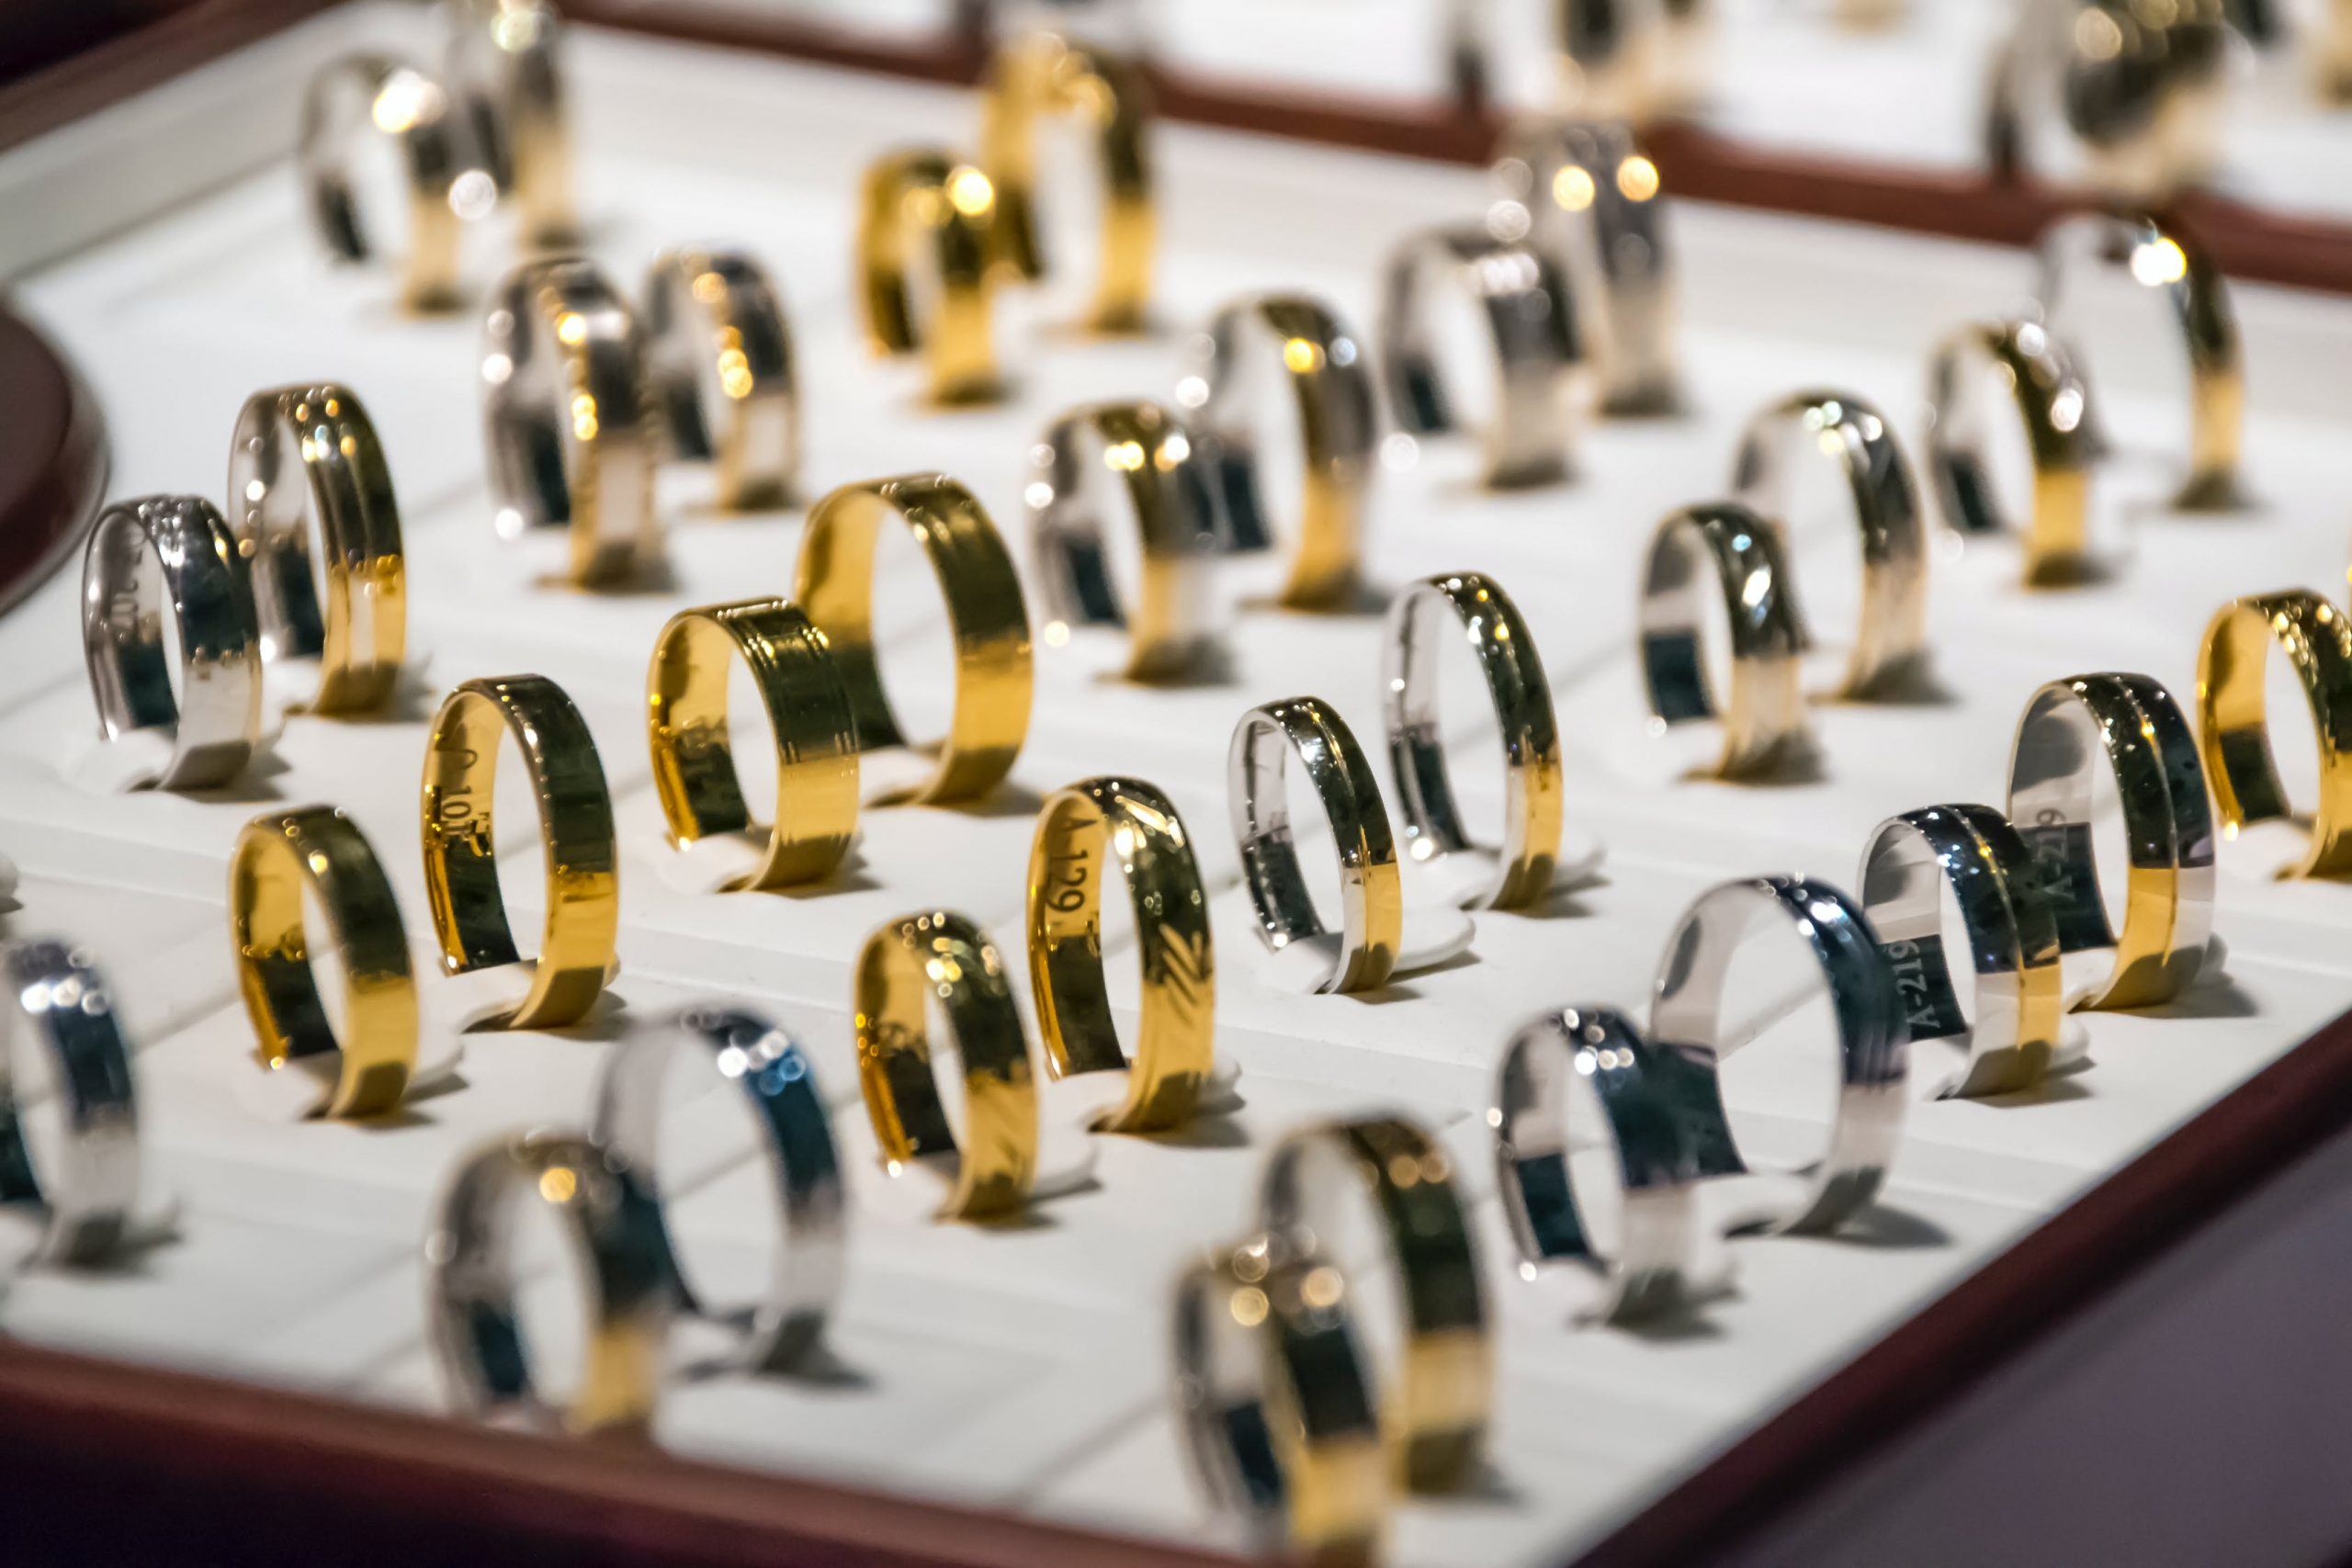 Jewellery Store Contents For Sale